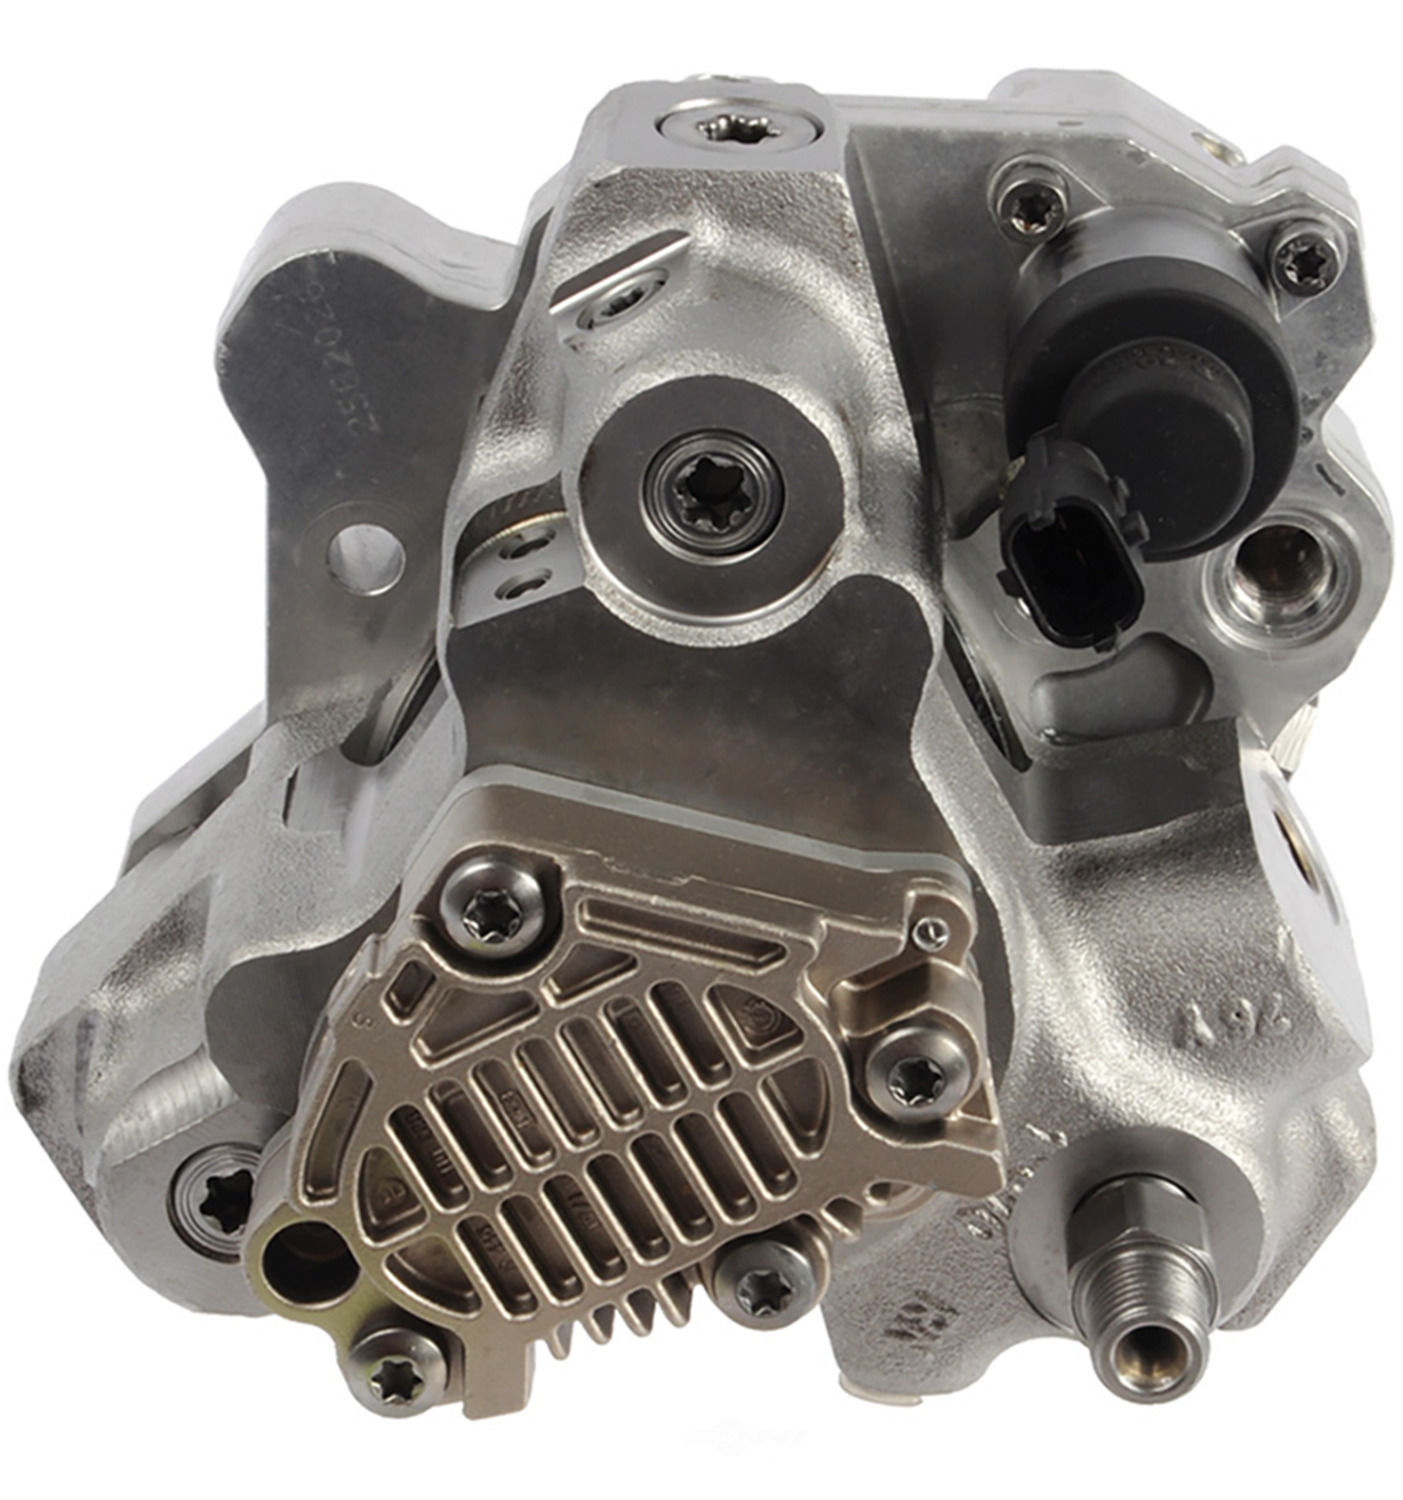 Cardone A 1 Fuel Injection Pump Part Number 2h 311 Remanufactured